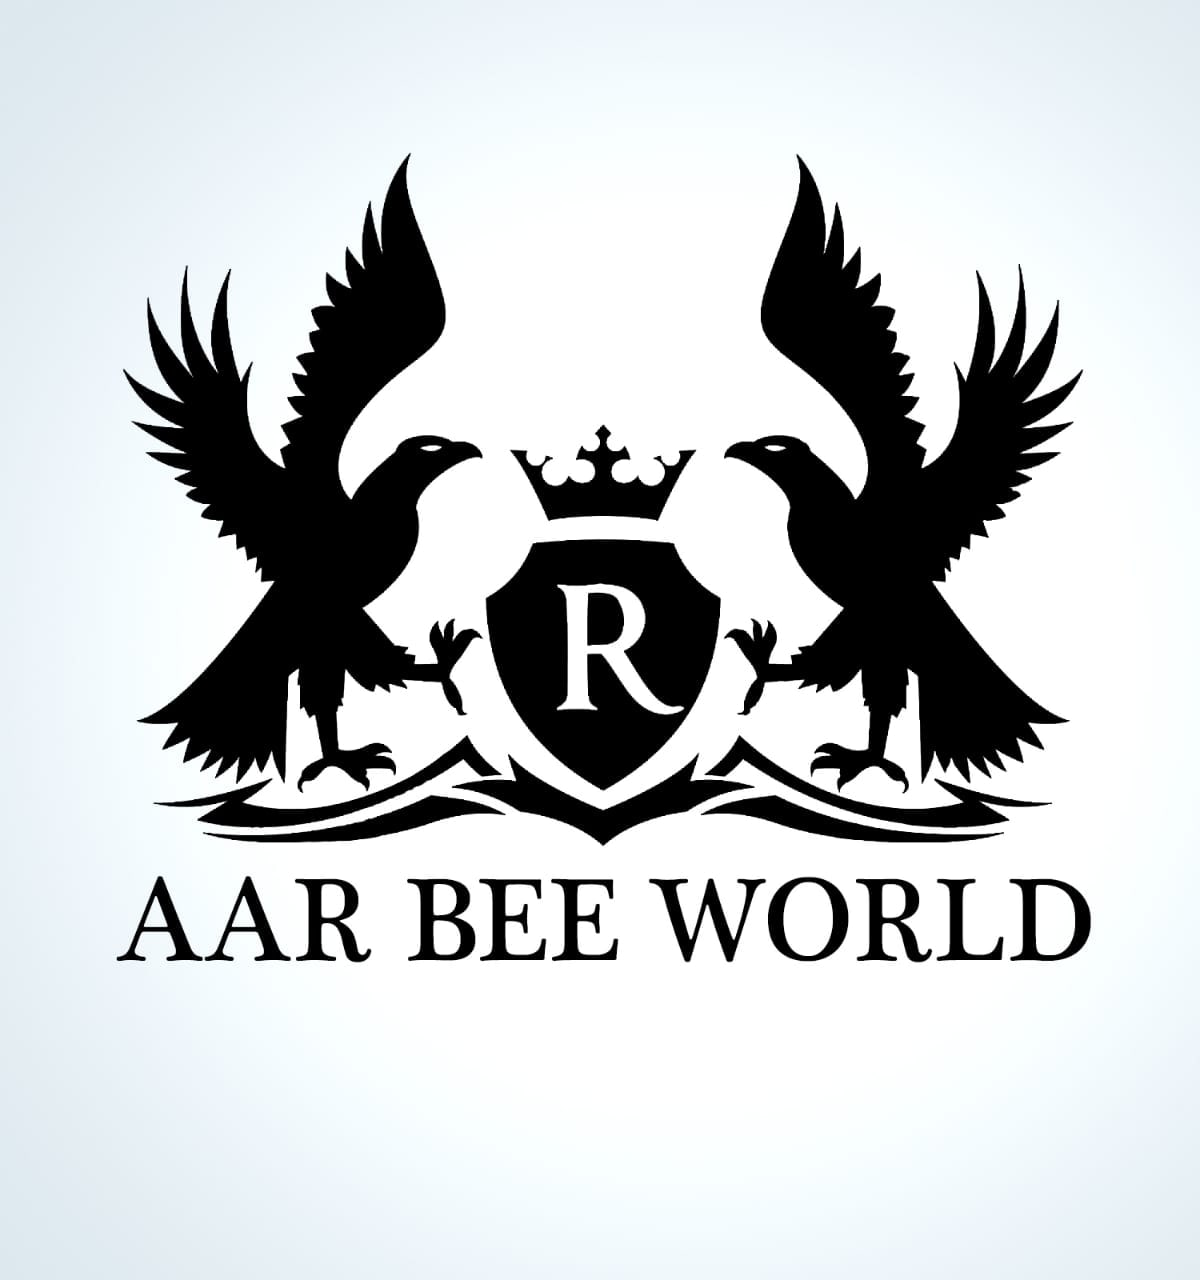 Aar Bee World